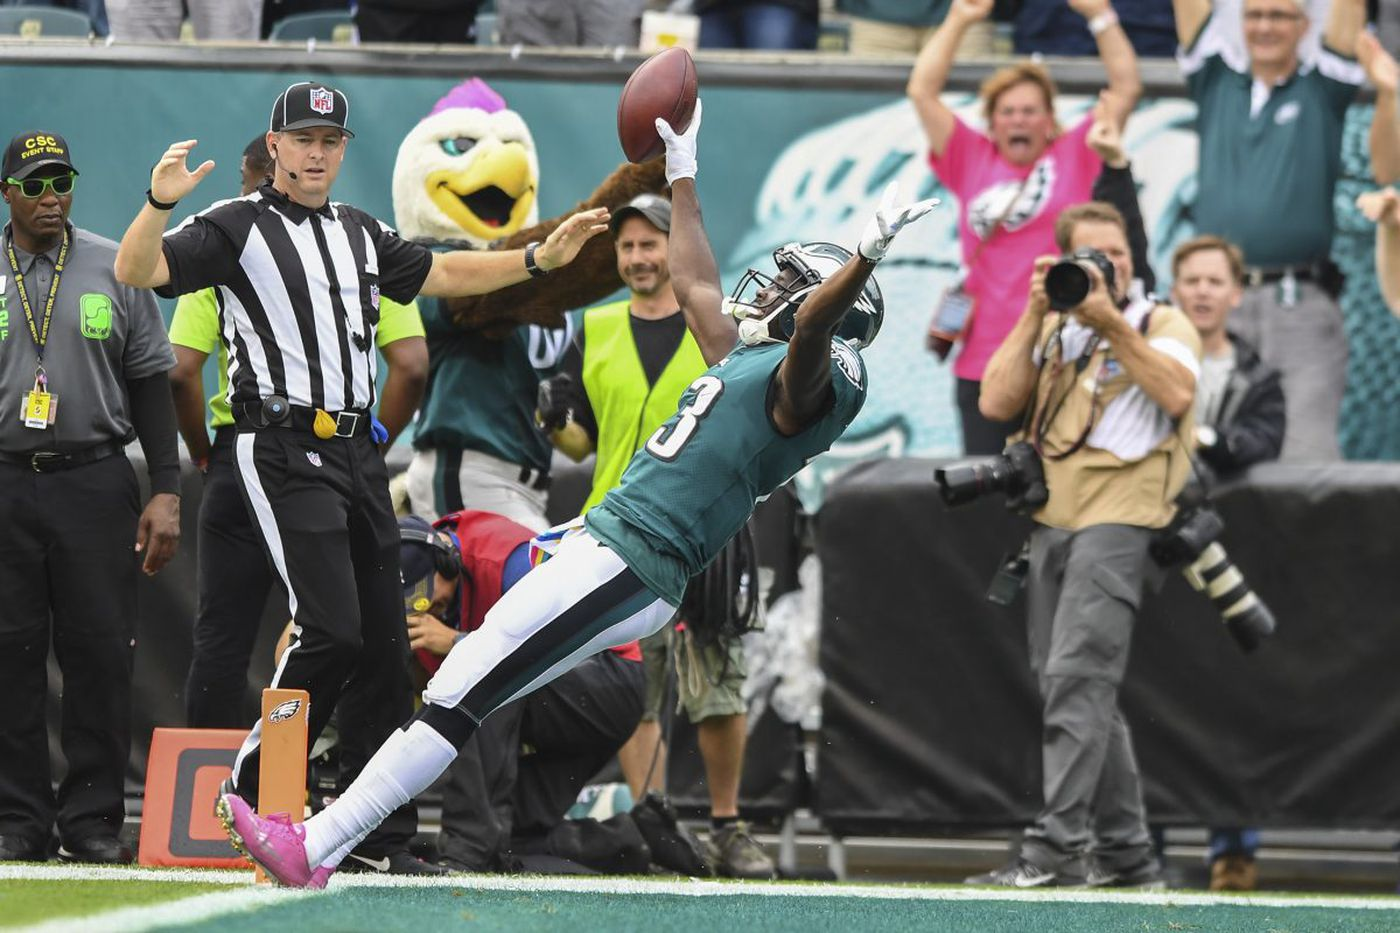 Eagles' Nelson Agholor returns to the scene of last year's low point a changed player